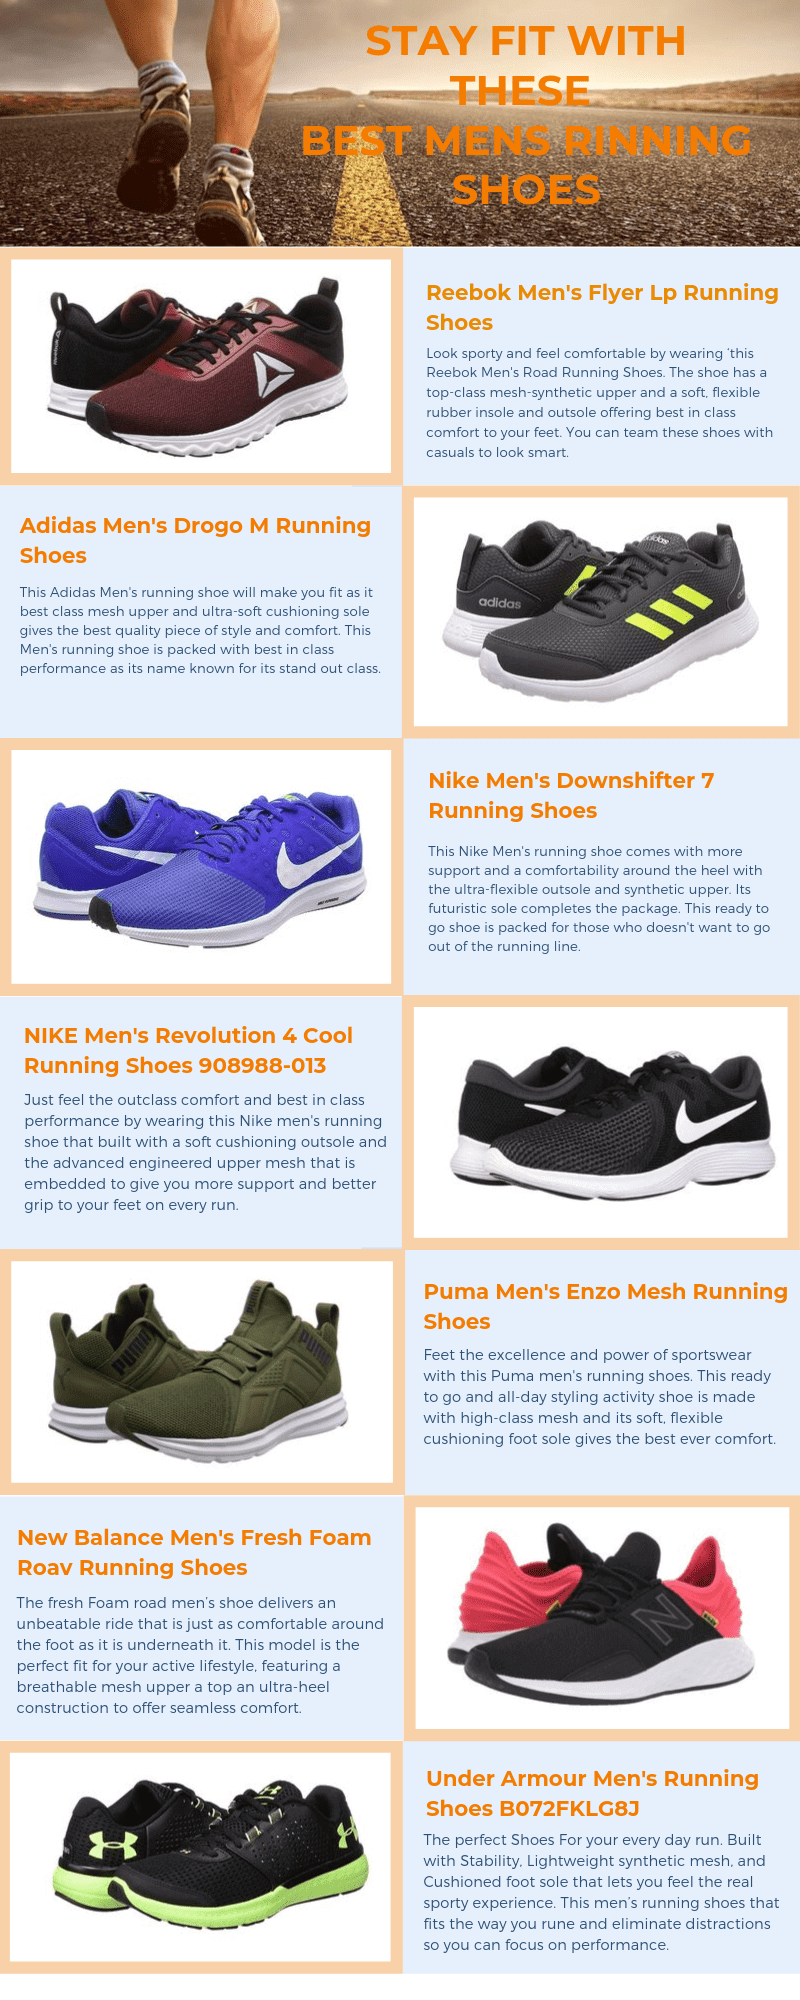 Infographic Best Branded Running Shoes For Men in India to Buy Online - Sep 2019